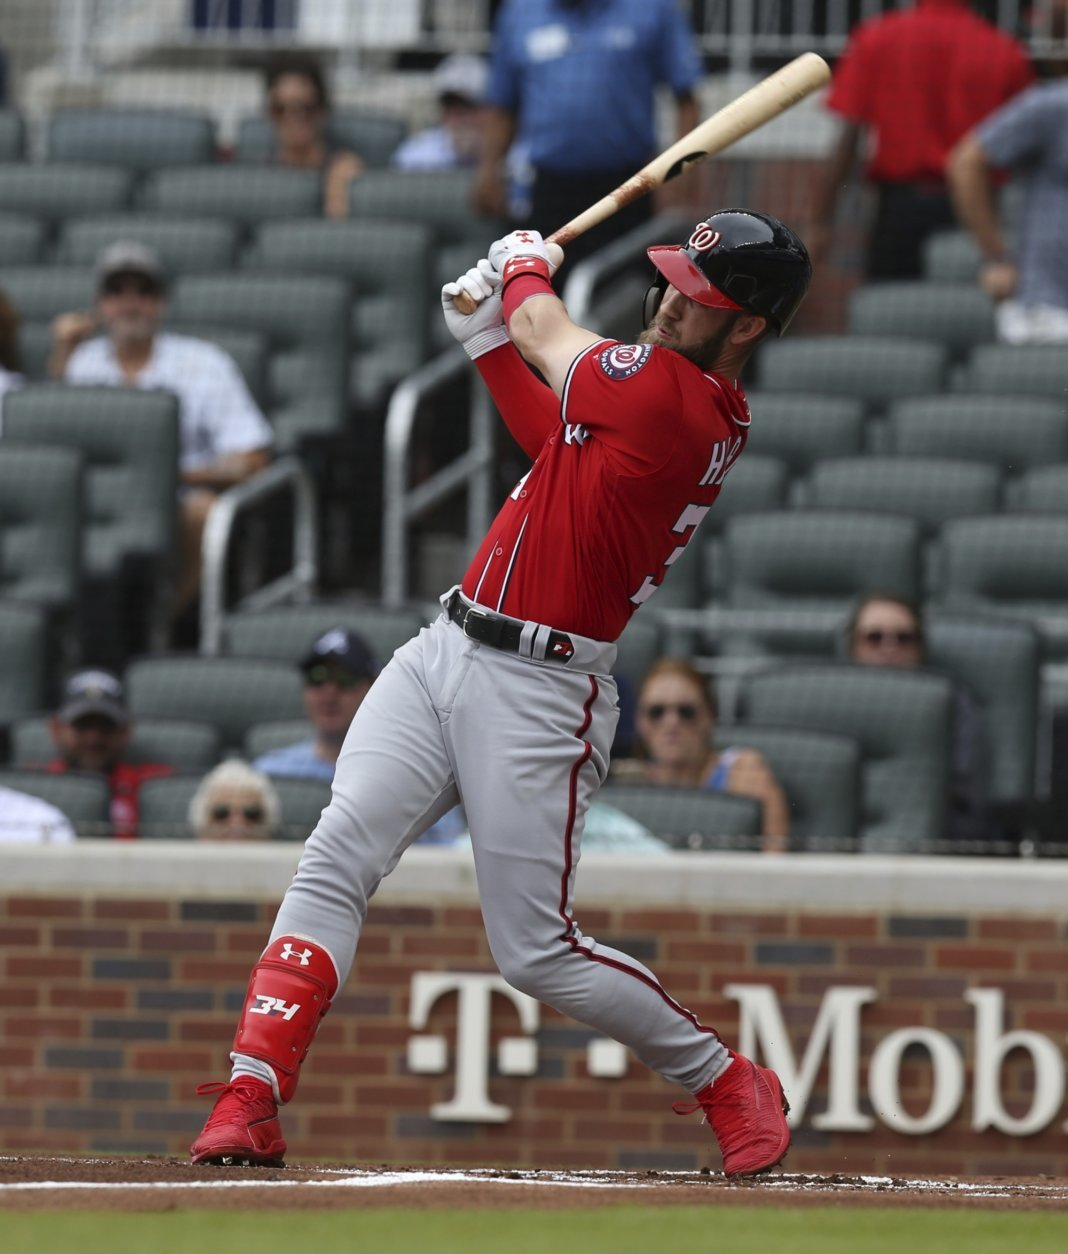 Washington Nationals' Bryce Harper hits a two-run home run against the Atlanta Braves during the first inning of a baseball game Sunday, Sept. 16, 2018, in Atlanta. (AP Photo/Tami Chappell)